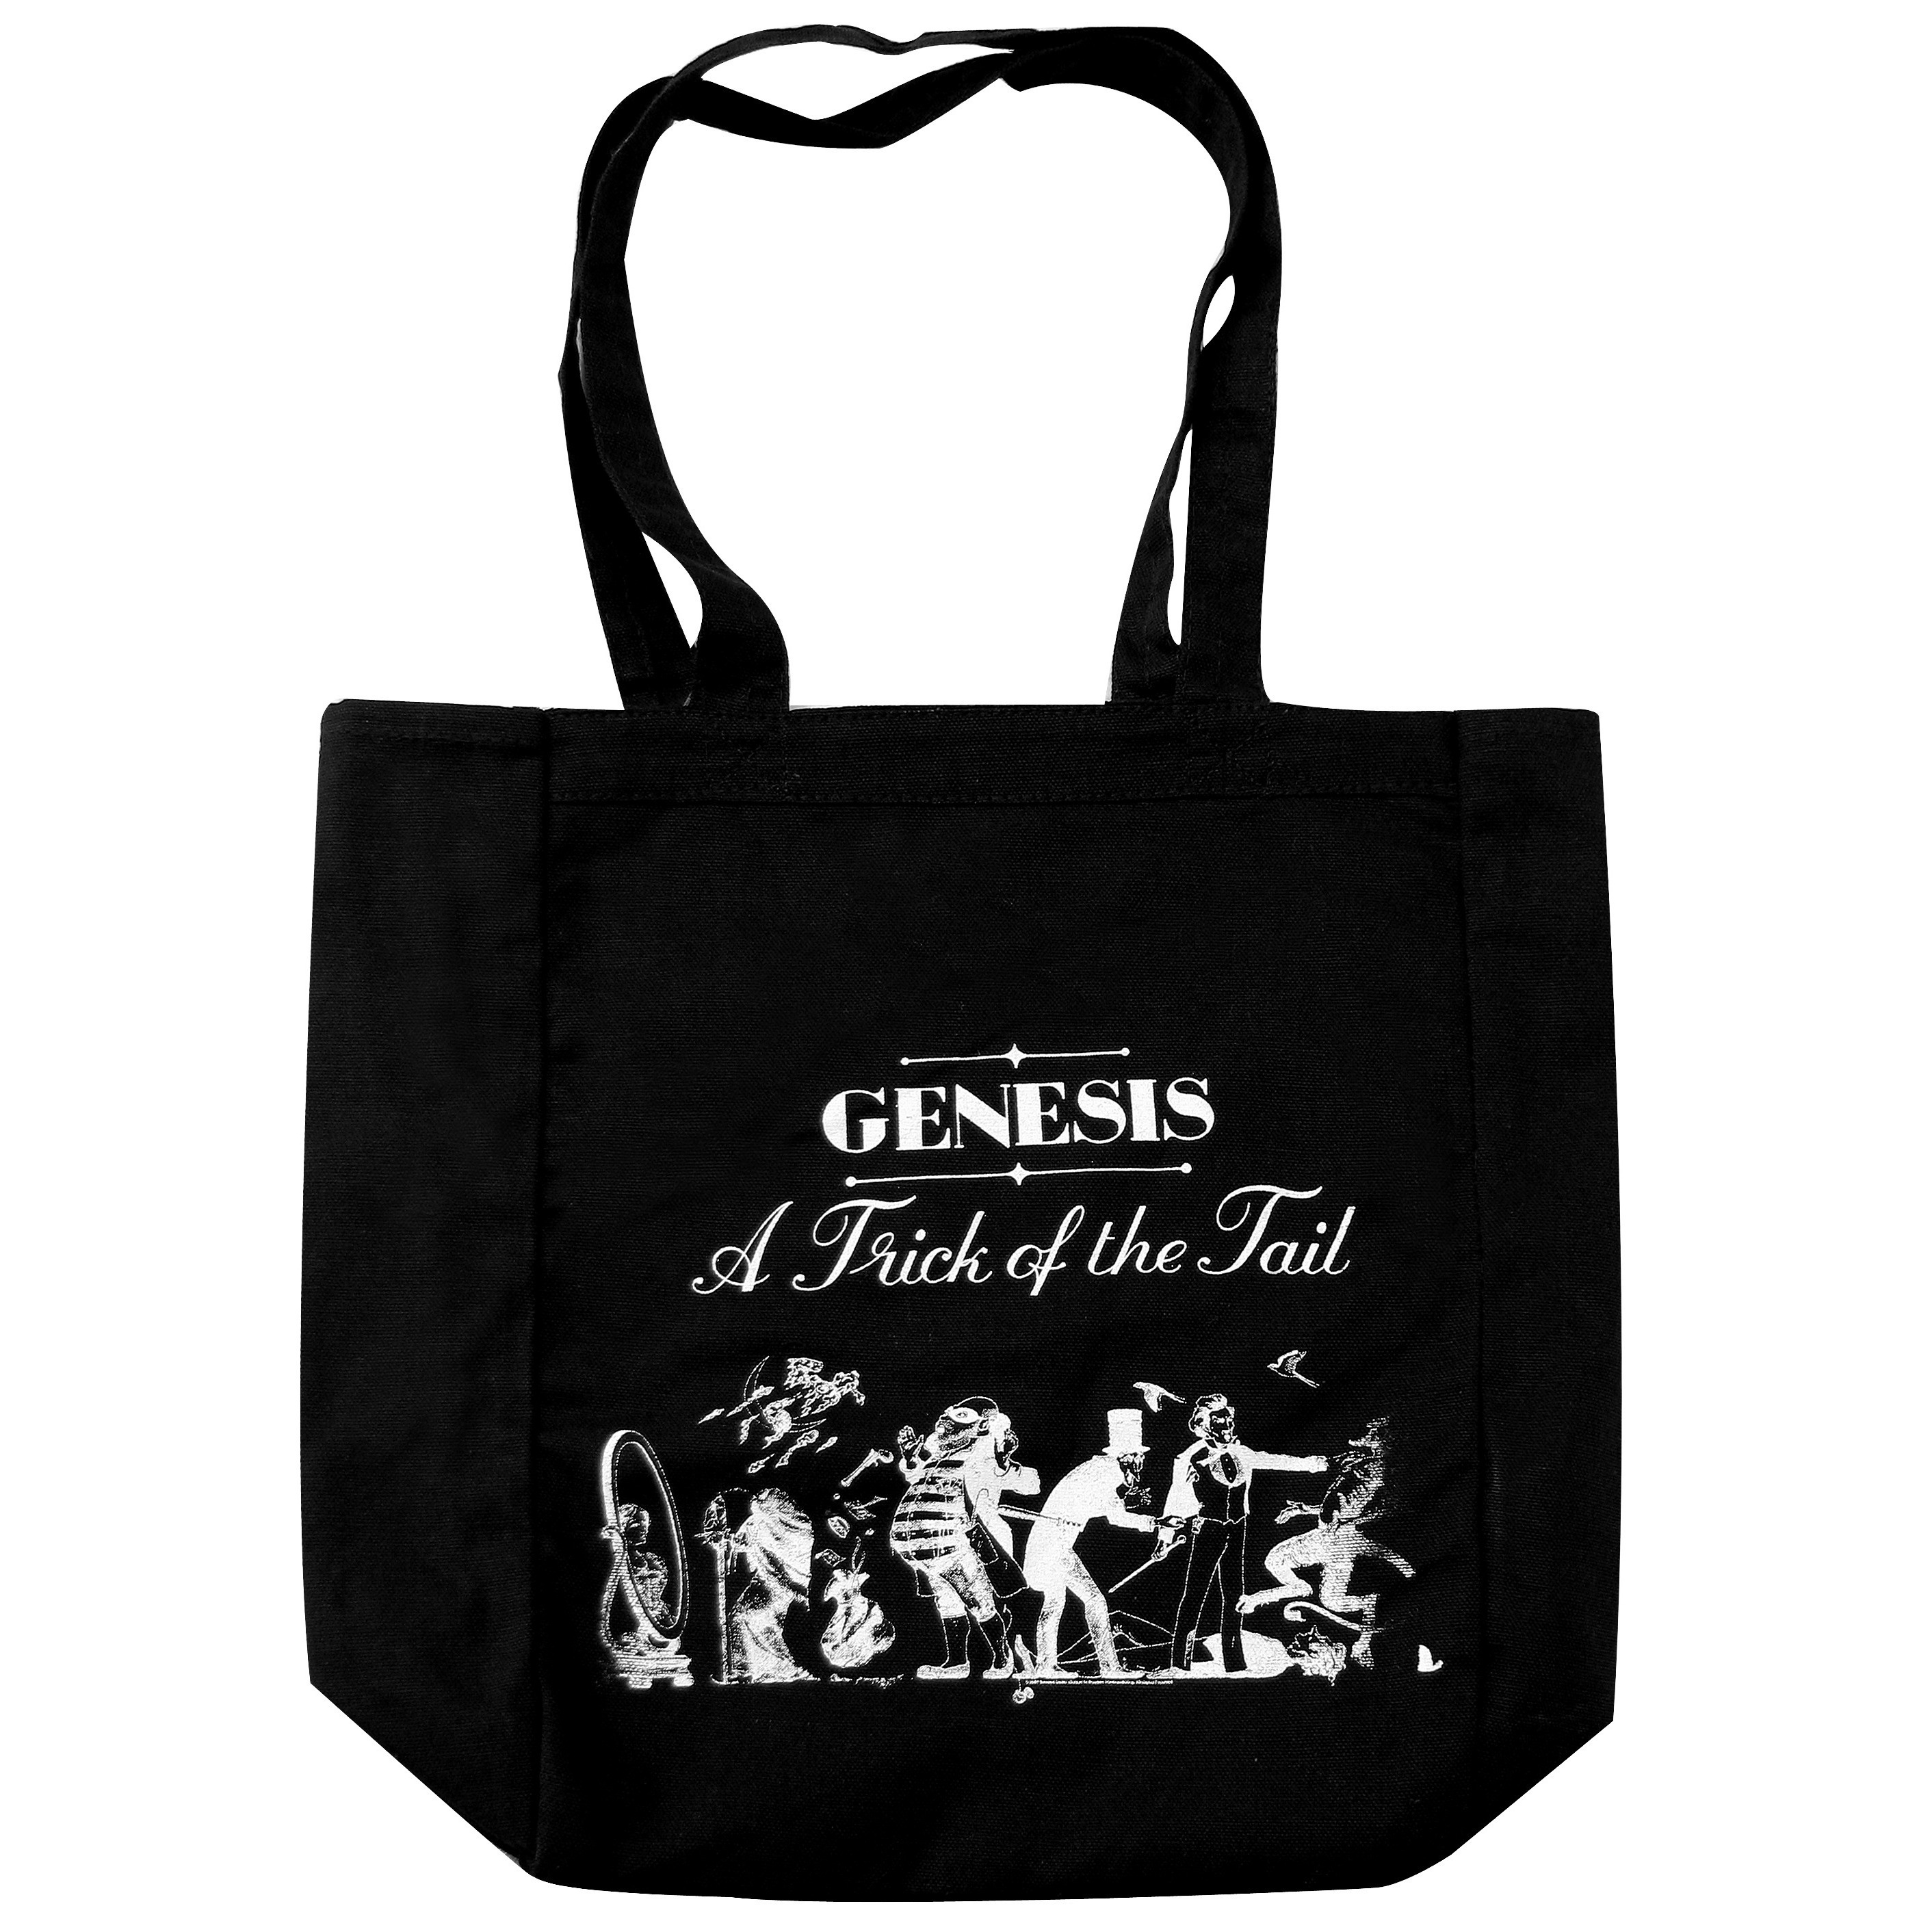 Genesis Black Tote Bag